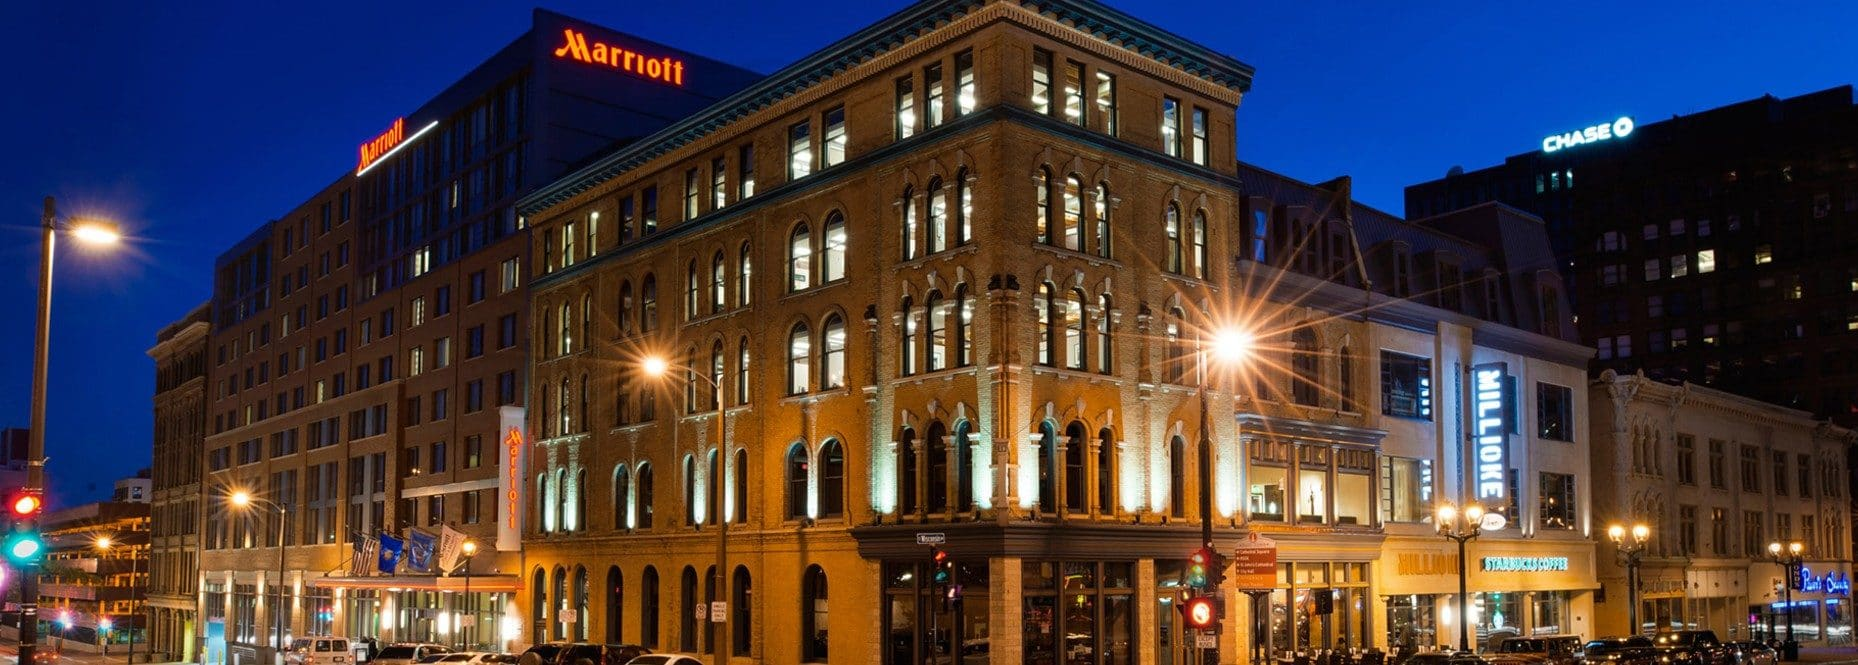 Marriott hotel coupons discounts